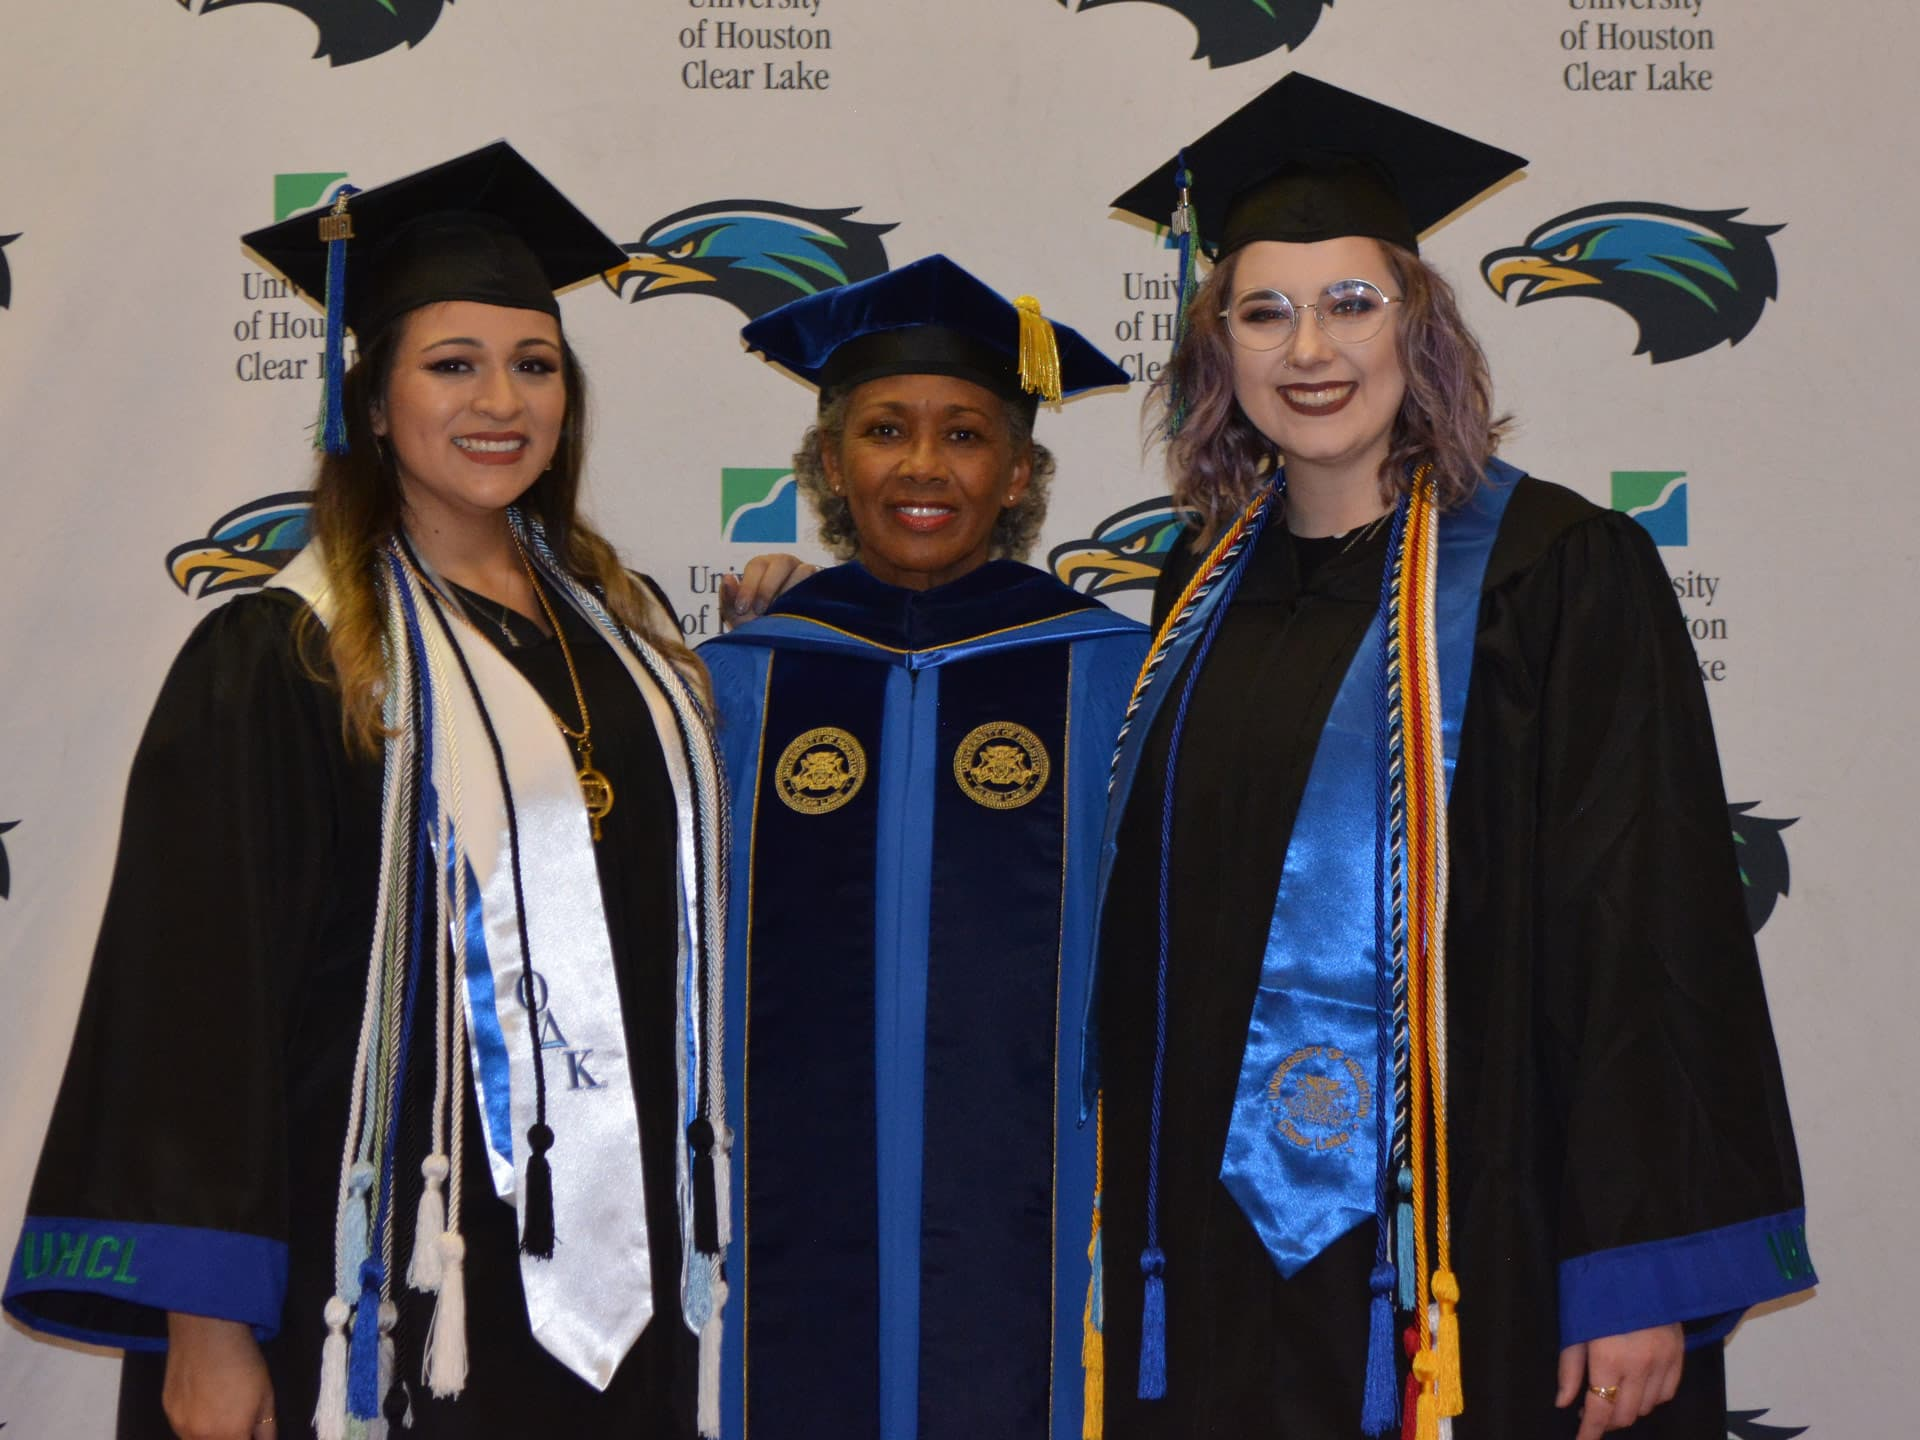 UHCL student representatives greet grads in afternoon ceremony